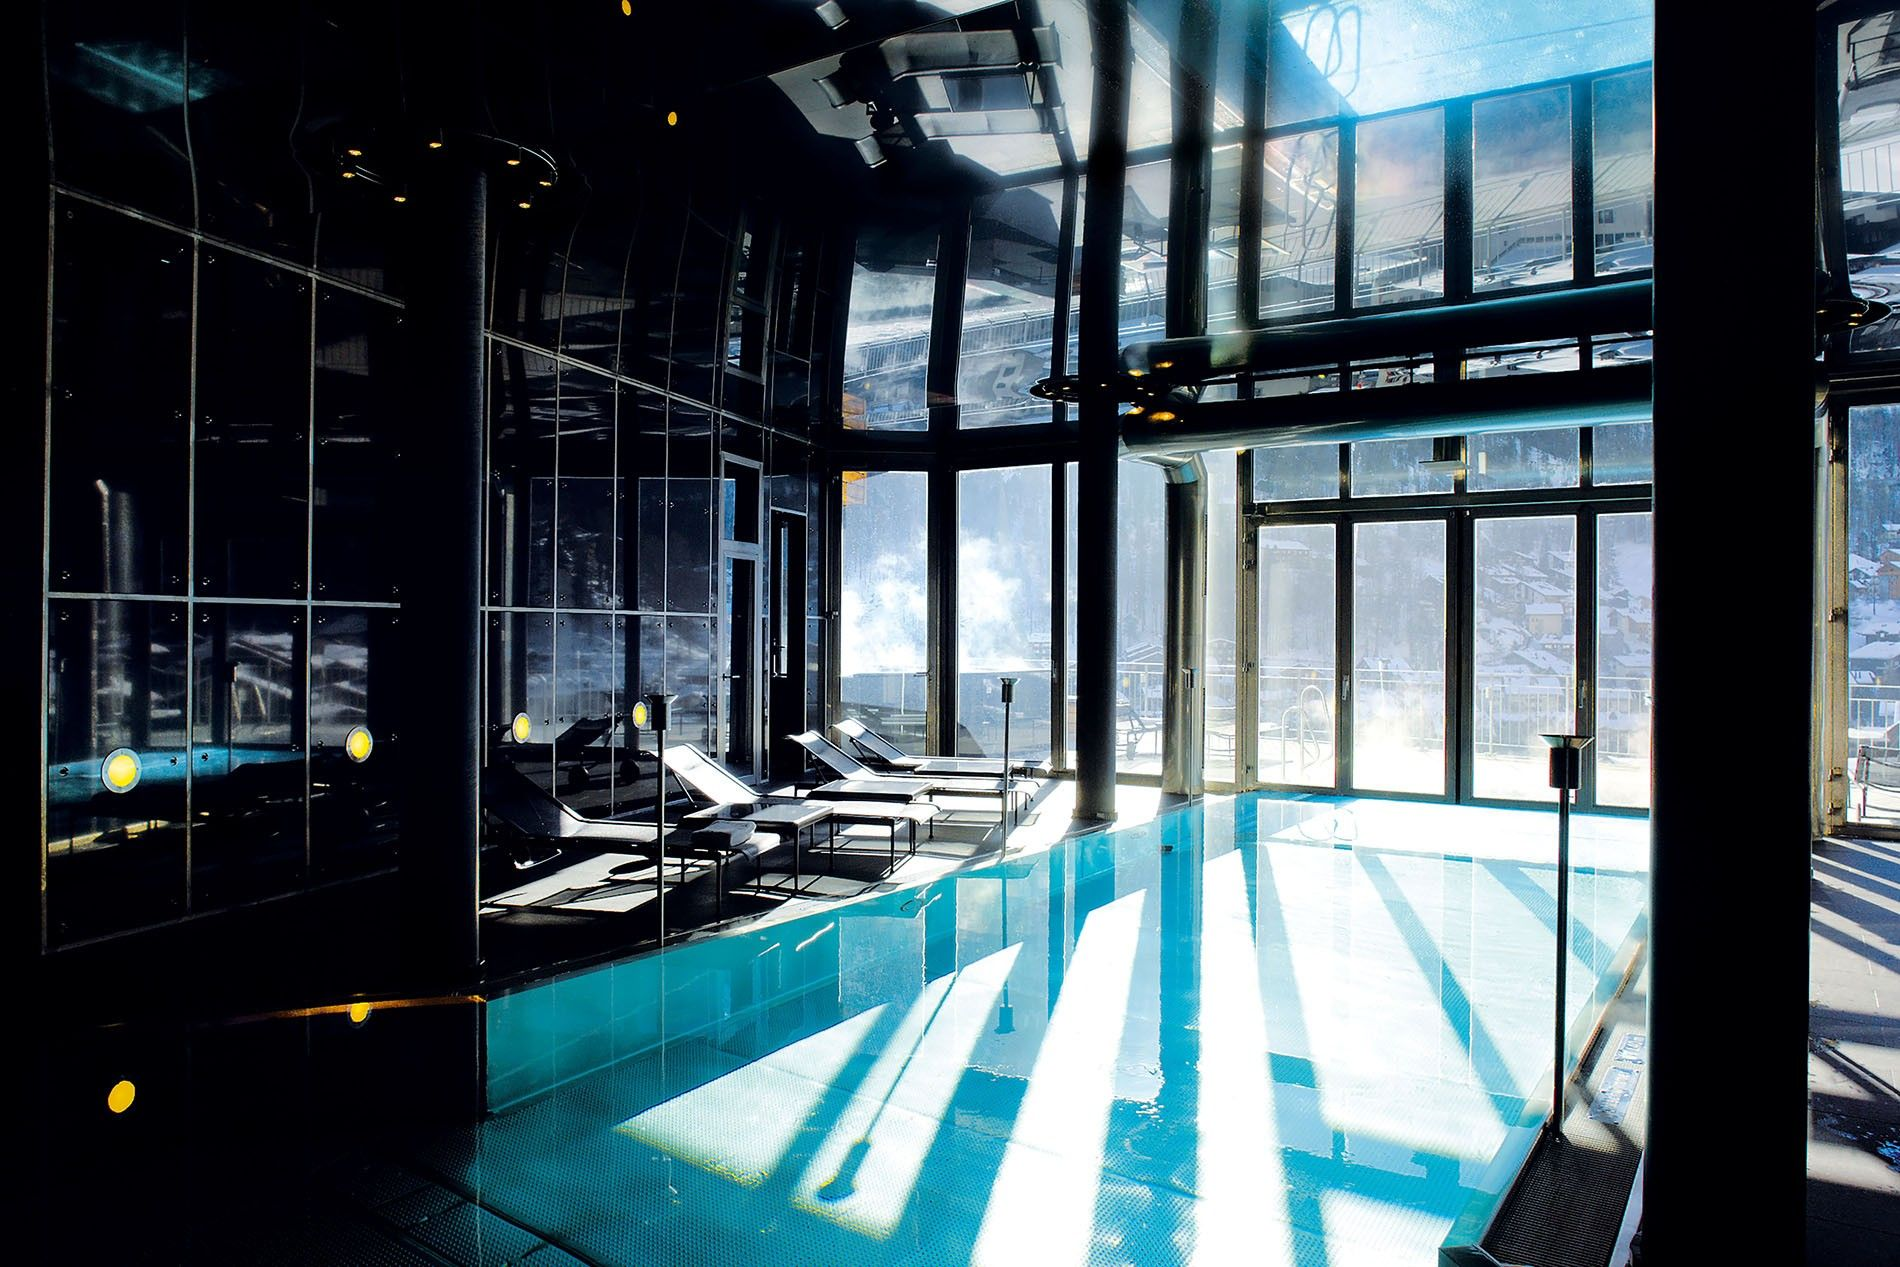 The spa at The Omnia, Zermatt includes an indoor/outdoor pool, as well as an outdoor whirlpool with a view of Zermatt and the Matterhorn.